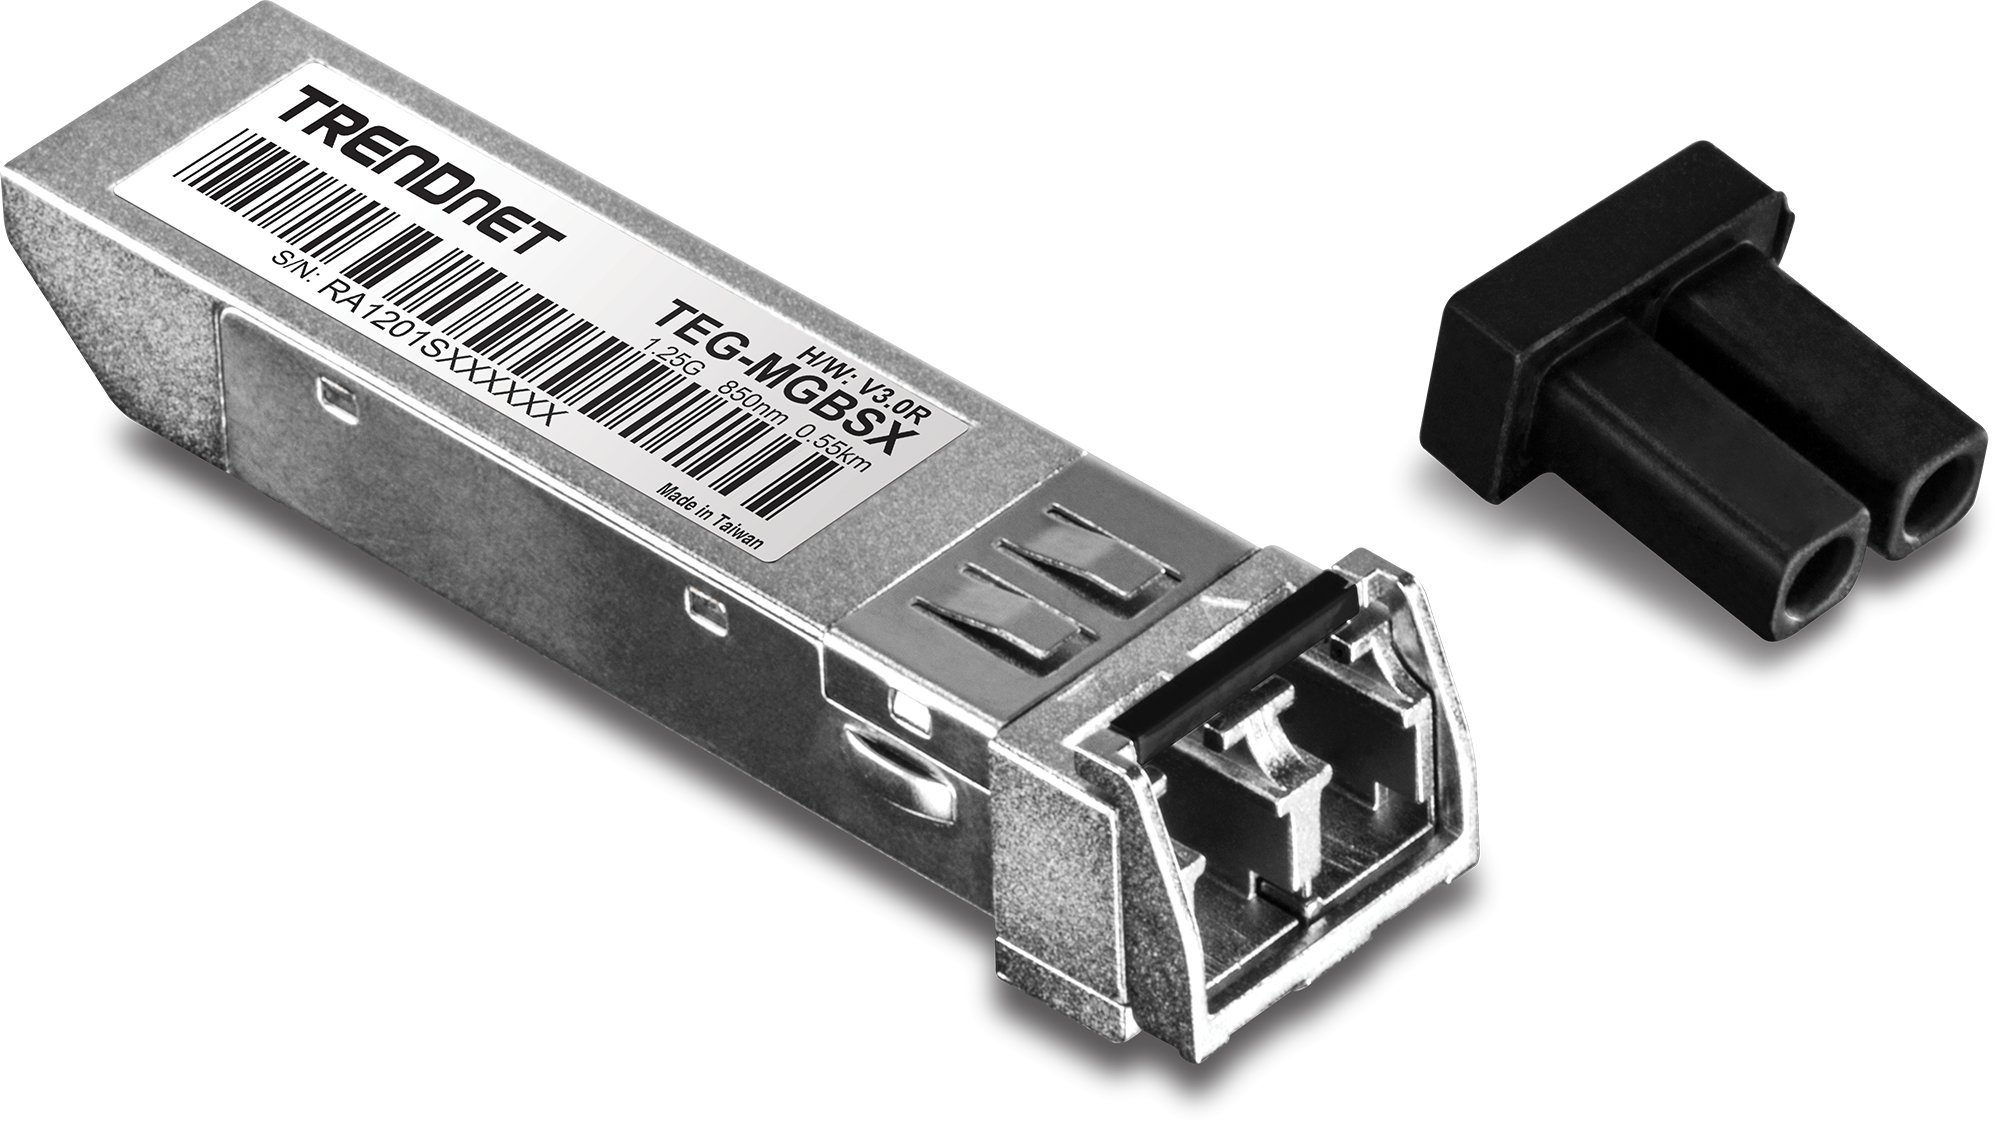 TRENDnet Gigabit SFP LC Module, Multi-Mode, Mini-GBIC, Up to 550 M (1800 ft.), Compatible with Standard SFP Slots, Hot Pluggable, ANSI Fiber Channel Compliant, TEG-MGBSX